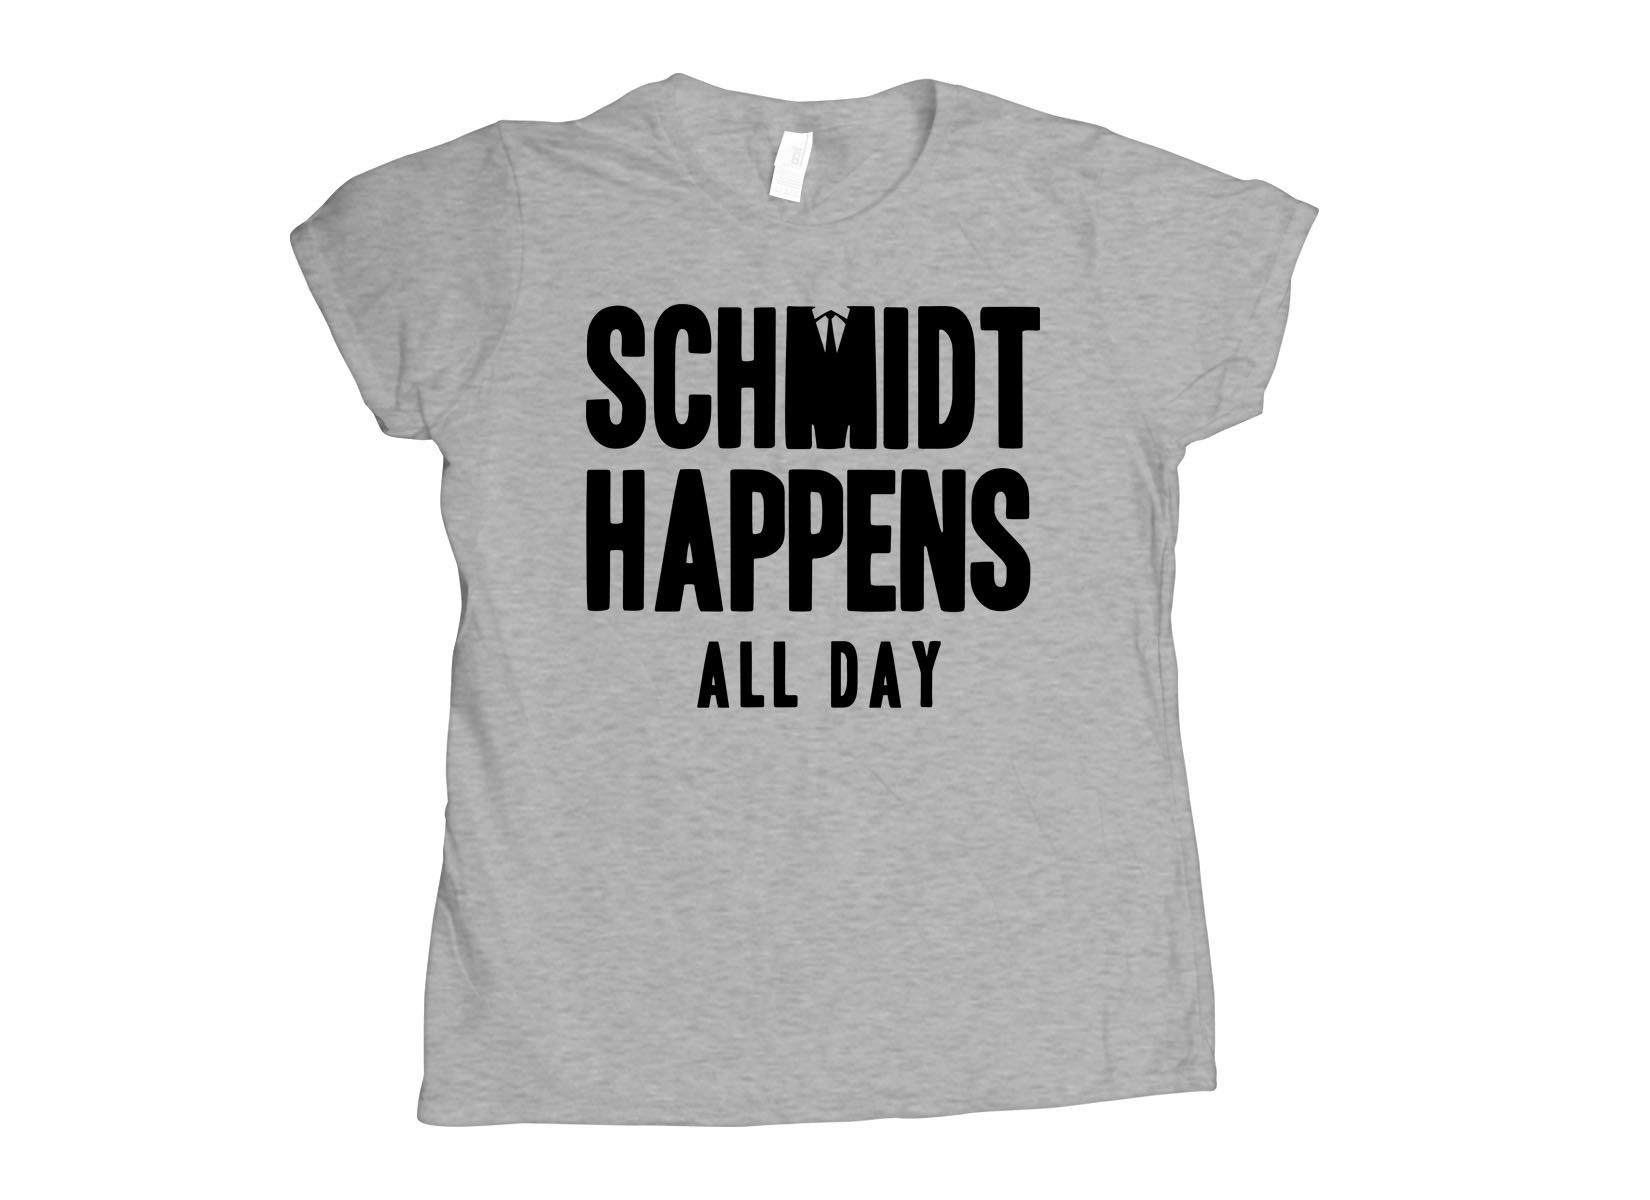 Schmidt Happens All Day on Womens T-Shirt